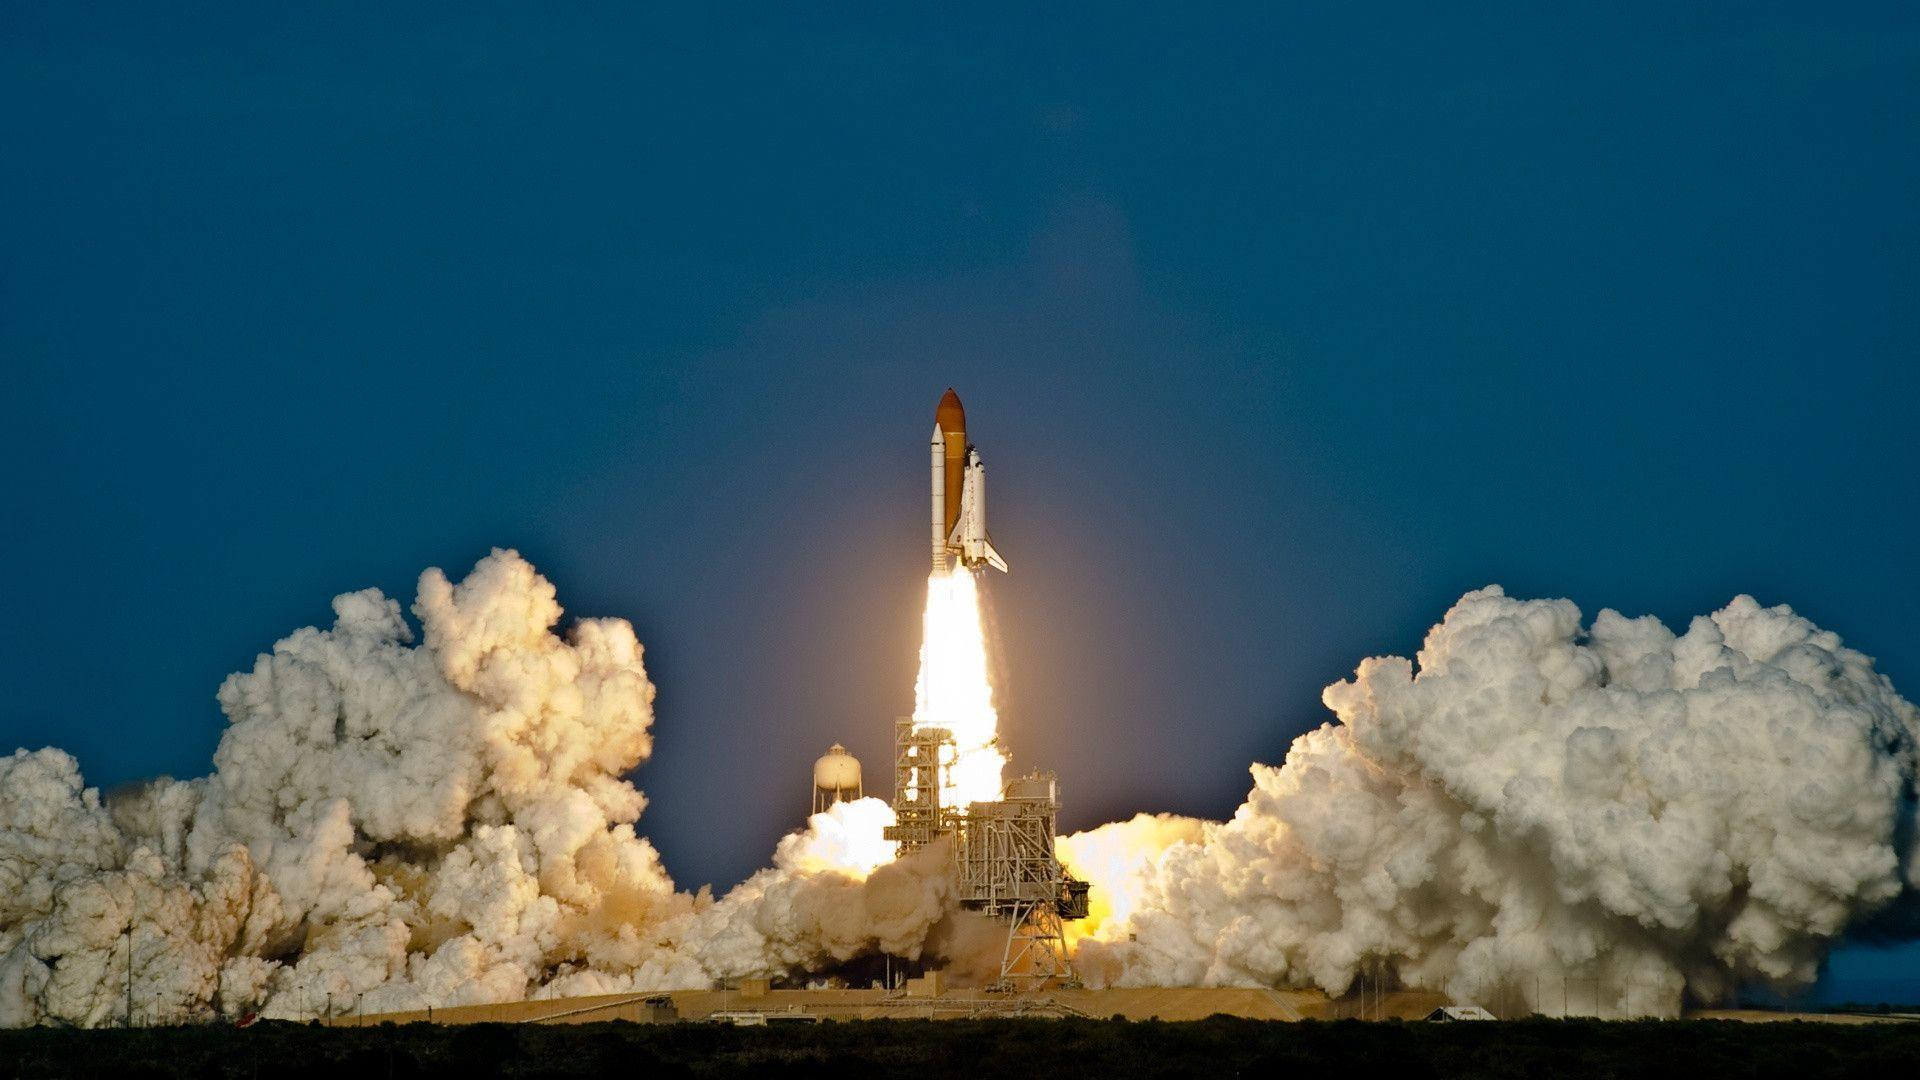 space shuttle space background - photo #4